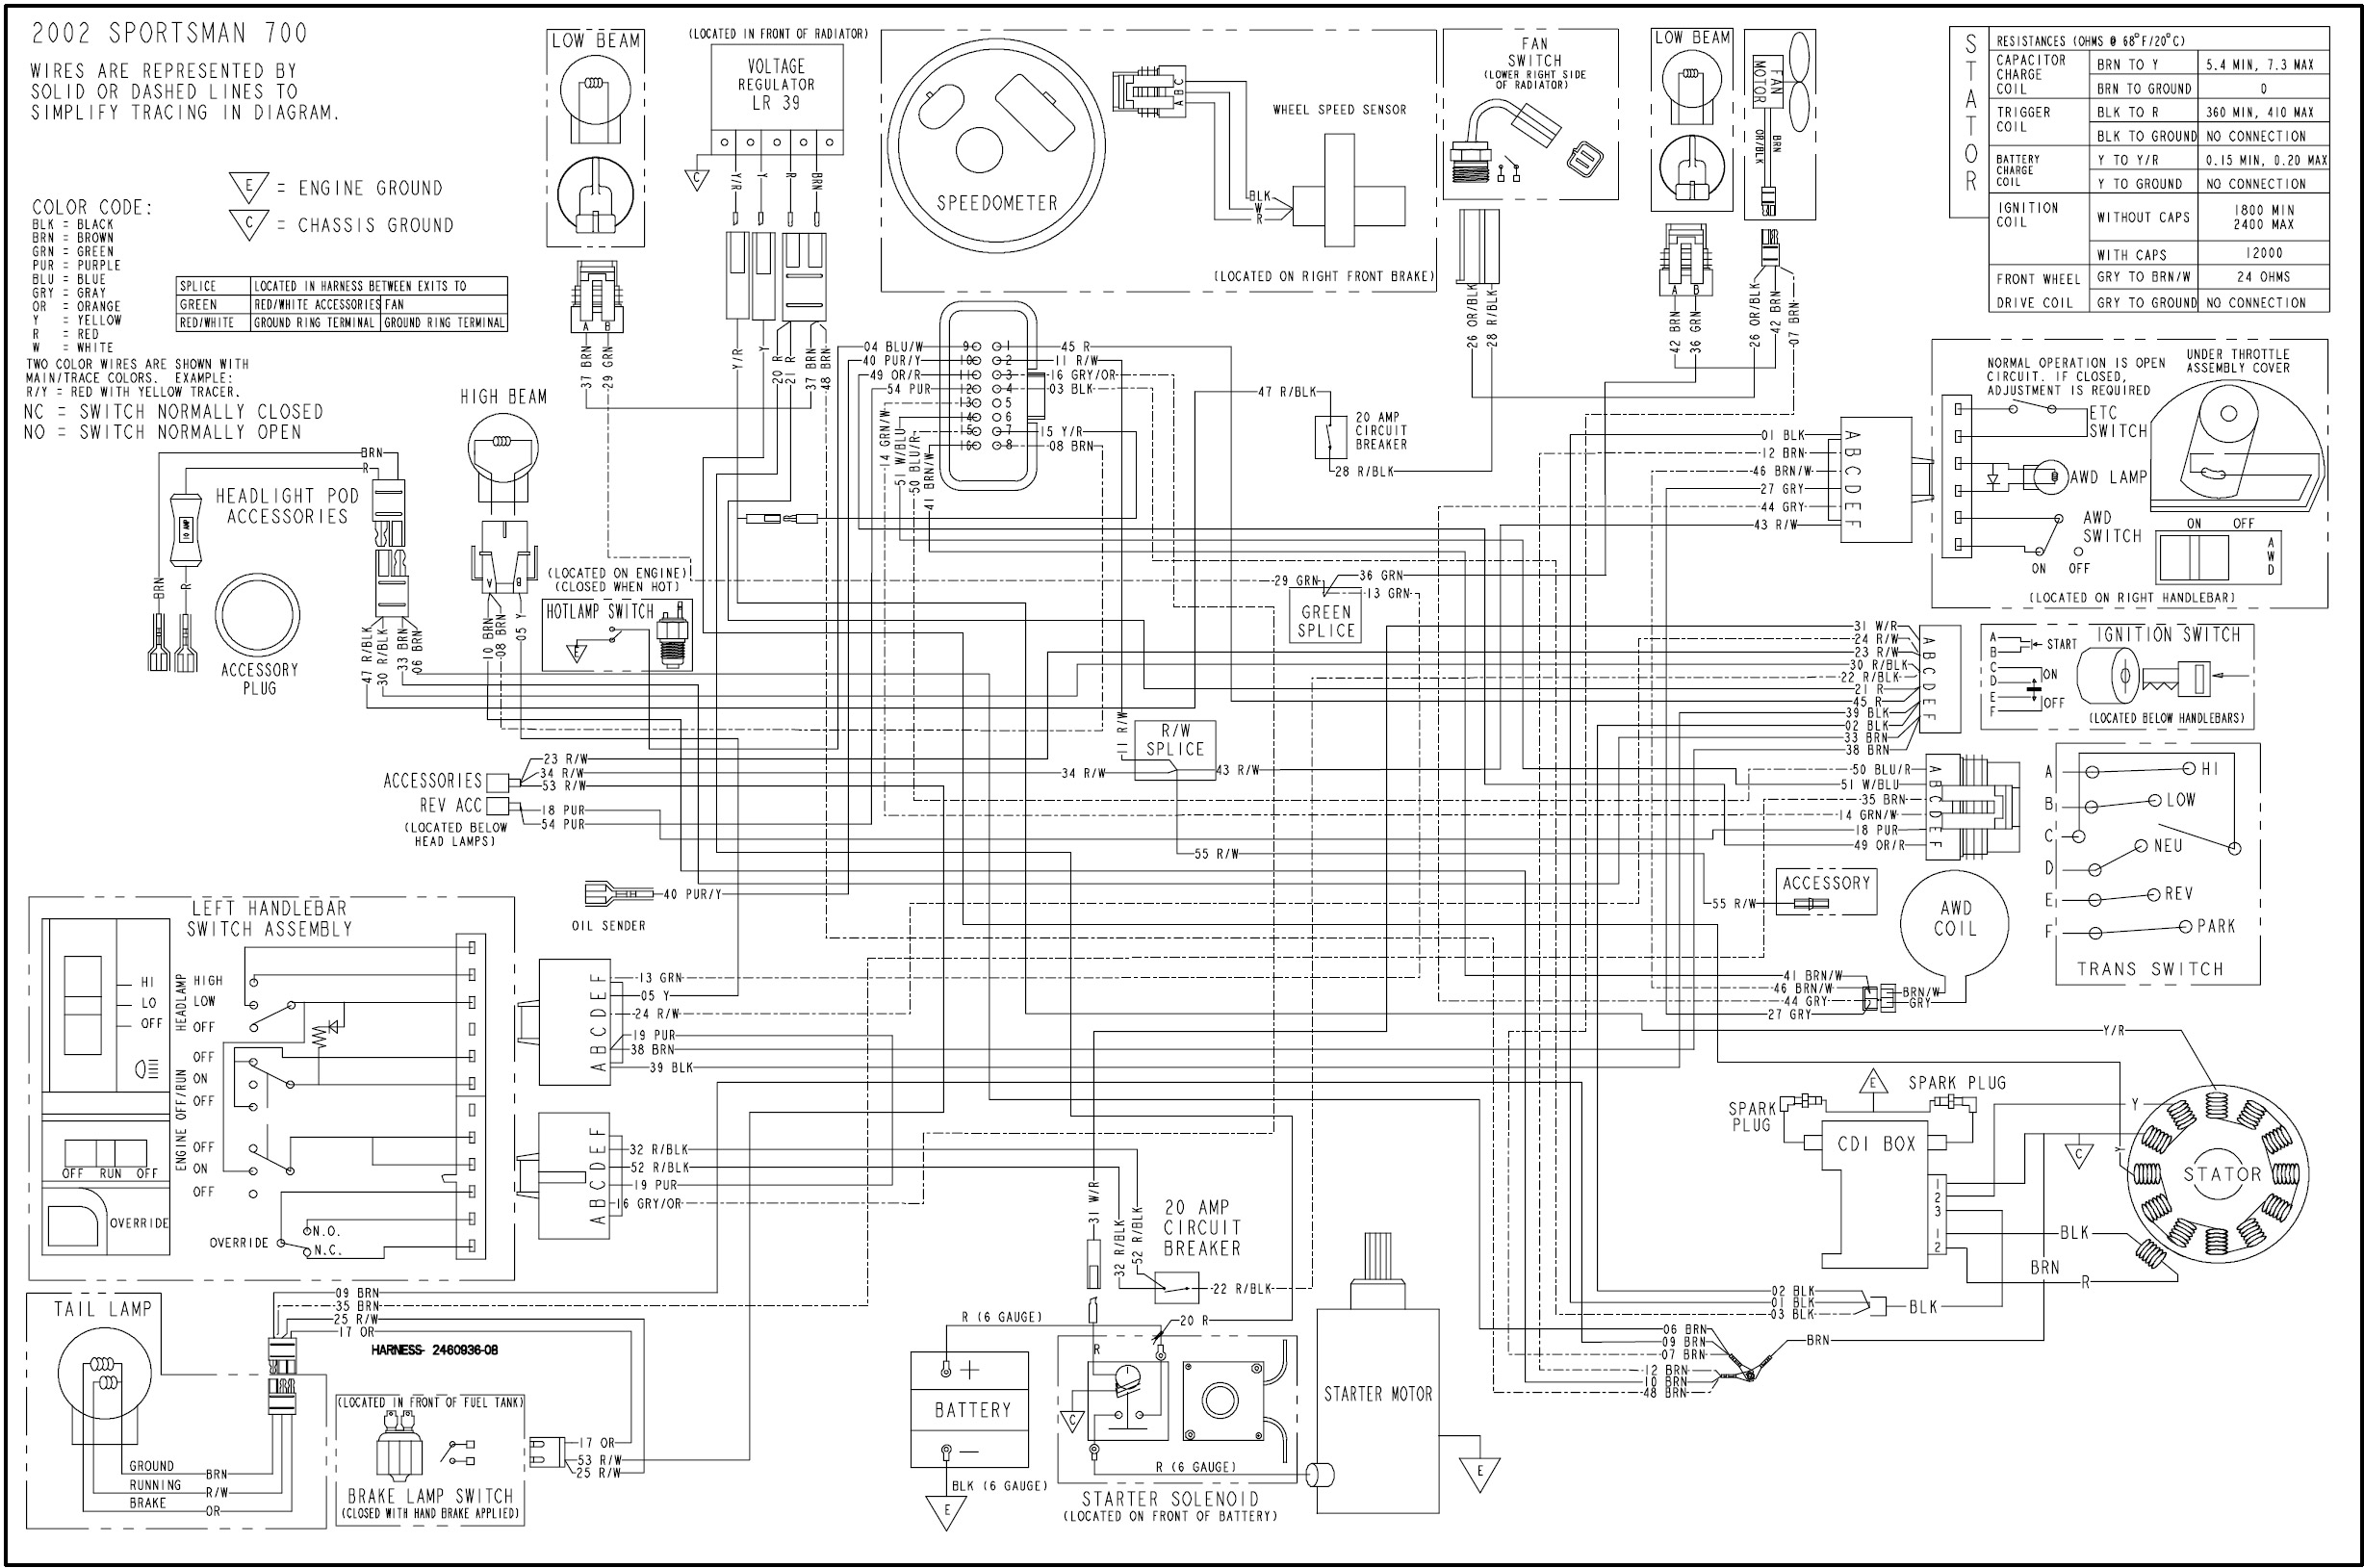 2004 polaris sportsman 600 wiring diagram 19 8 tridonicsignage de \u20222003 600 sportsman no spark polaris atv forum rh polarisatvforums com 2004 polaris sportsman 600 twin wiring diagram polaris sportsman 700 wiring diagram